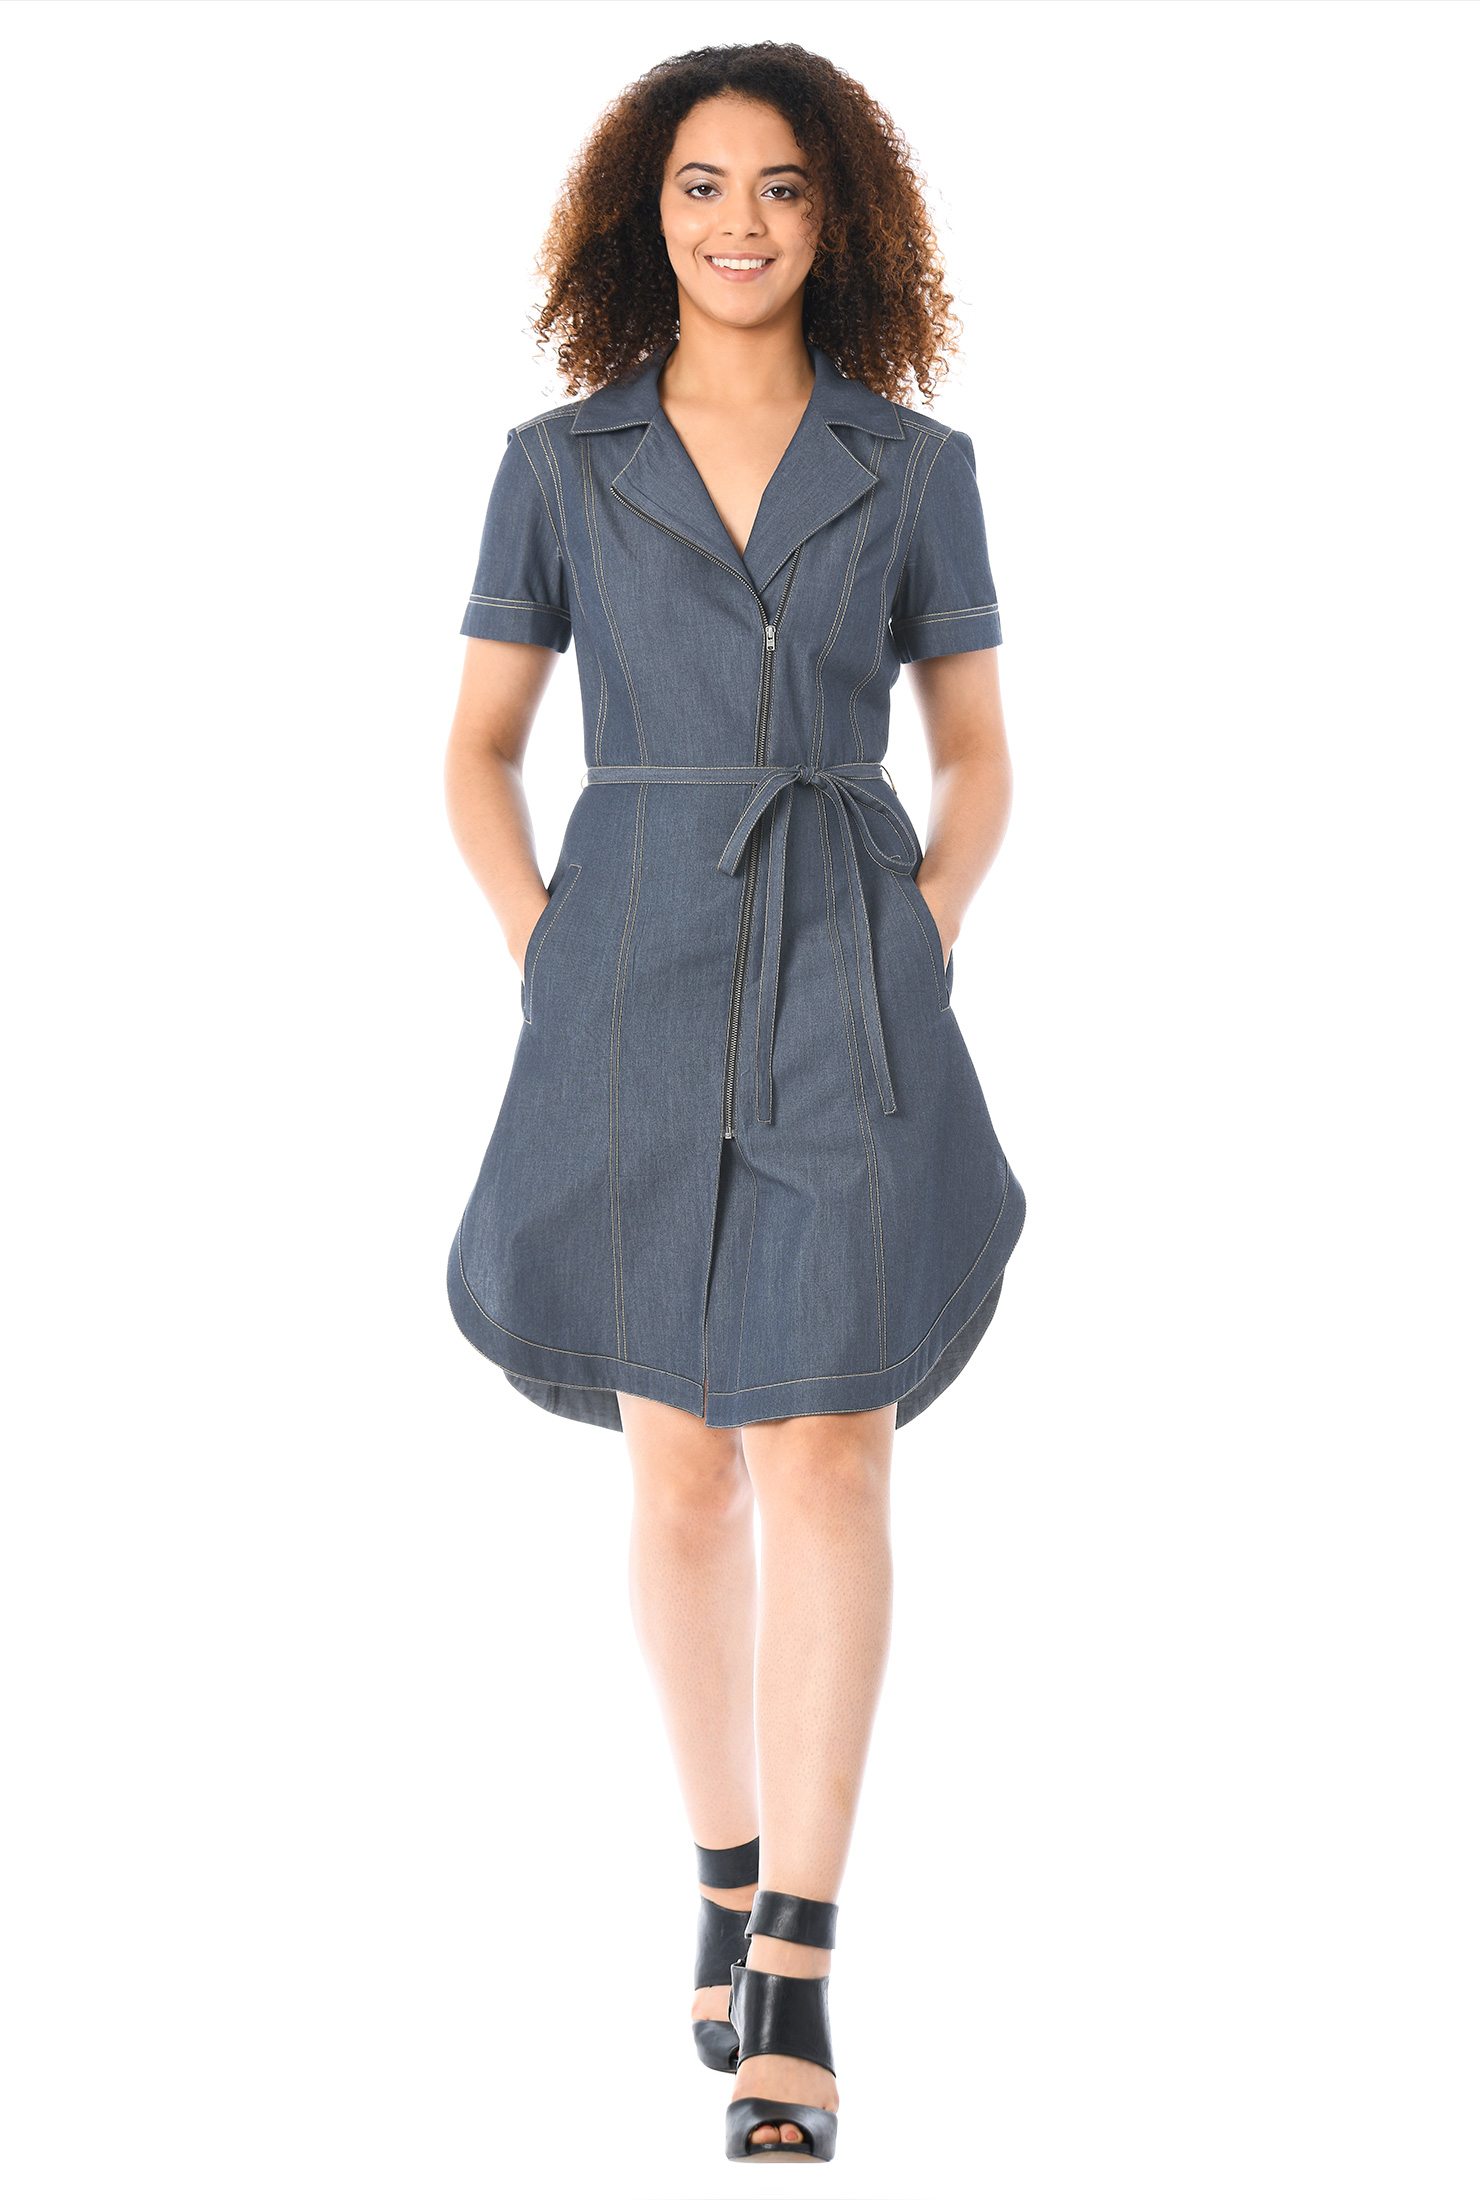 eShakti Women's Metal zip front cotton chambray dress